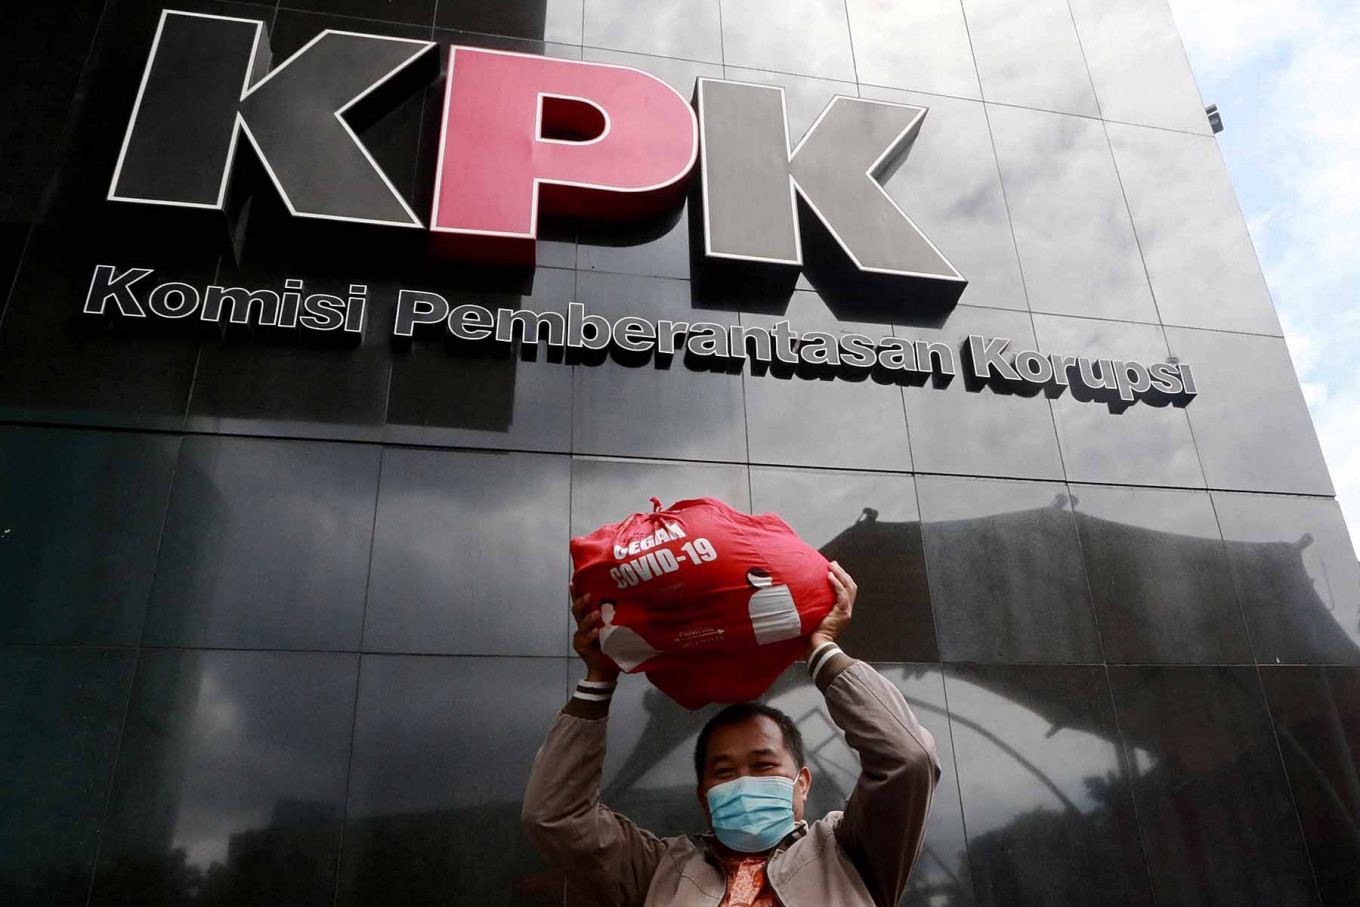 Indonesian Anti-Corruption Community (MAKI) coordinator Boyamin Saiman brings a social aid package worth Rp 188,000 (US$13.35) to the Corruption Eradication Commission (KPK) headquarters in Jakarta on Dec. 16. He handed over the package to the graft busters as evidence for the KPK's investigation into a suspected bribery case pertaining to the COVID-19 social aid procurement. The antigraft body has named Social Affairs Minister Juliari Batubara a suspect in the case. JP/Dhoni Setiawan